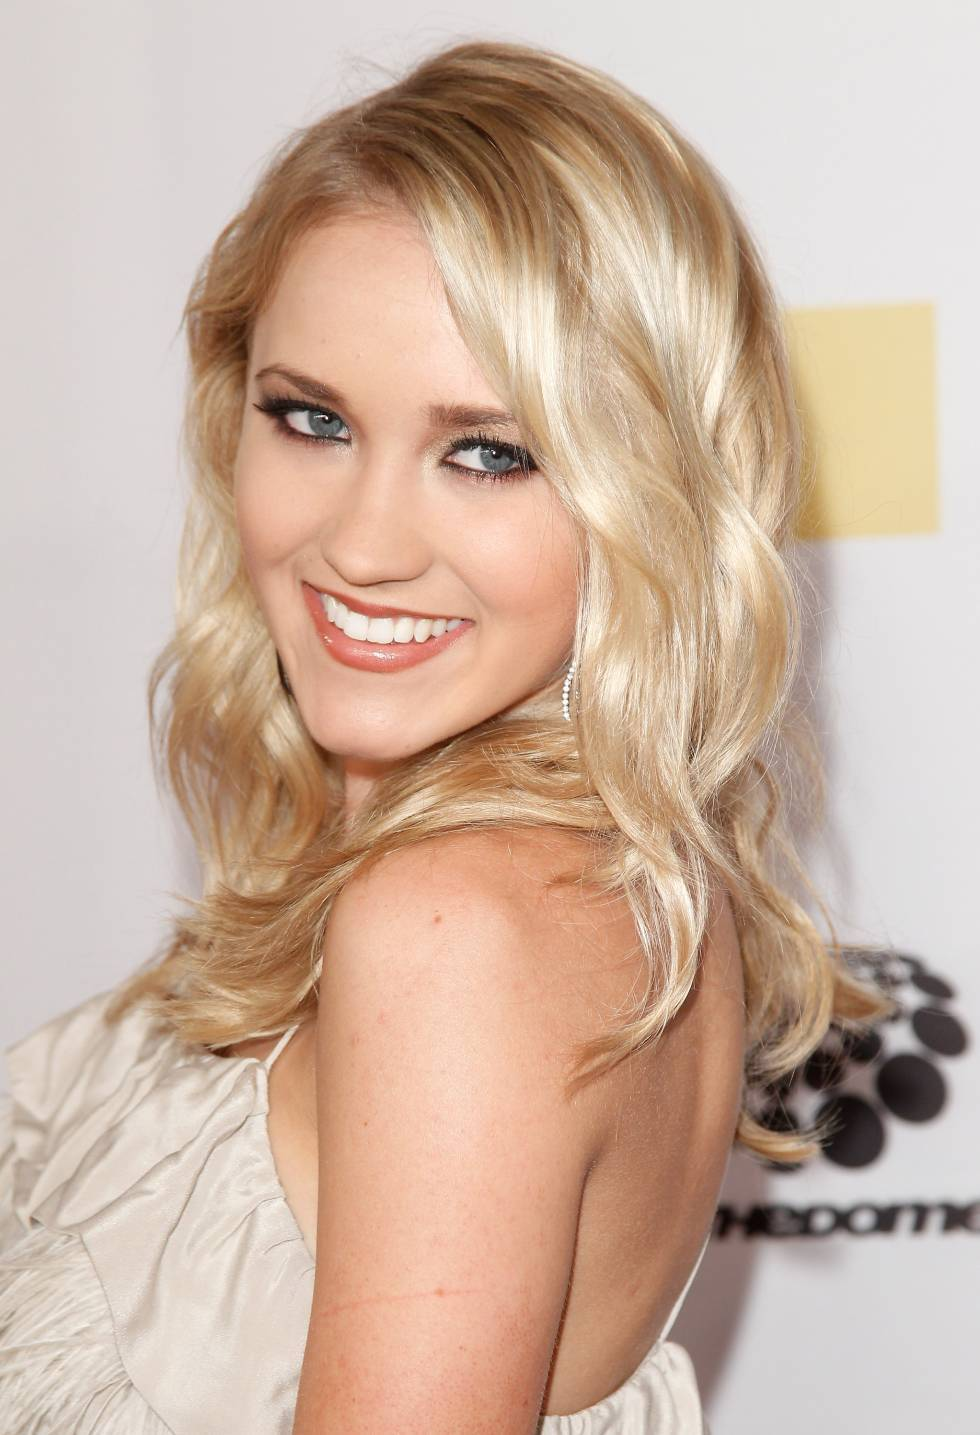 emily osment gifemily osment all the way up, emily osment let's be friends, emily osment lovesick, emily osment you are the only one, emily osment 2017, emily osment once upon a dream, emily osment miley cyrus, emily osment hq, emily osment site, emily osment movies, emily osment gif tumblr, emily osment and mitchel musso, emily osment films, emily osment chords, emily osment let's be friends mp3, emily osment gif, emily osment i don't think about it, emily osment politics, emily osment ft mitchel musso, emily osment twitter